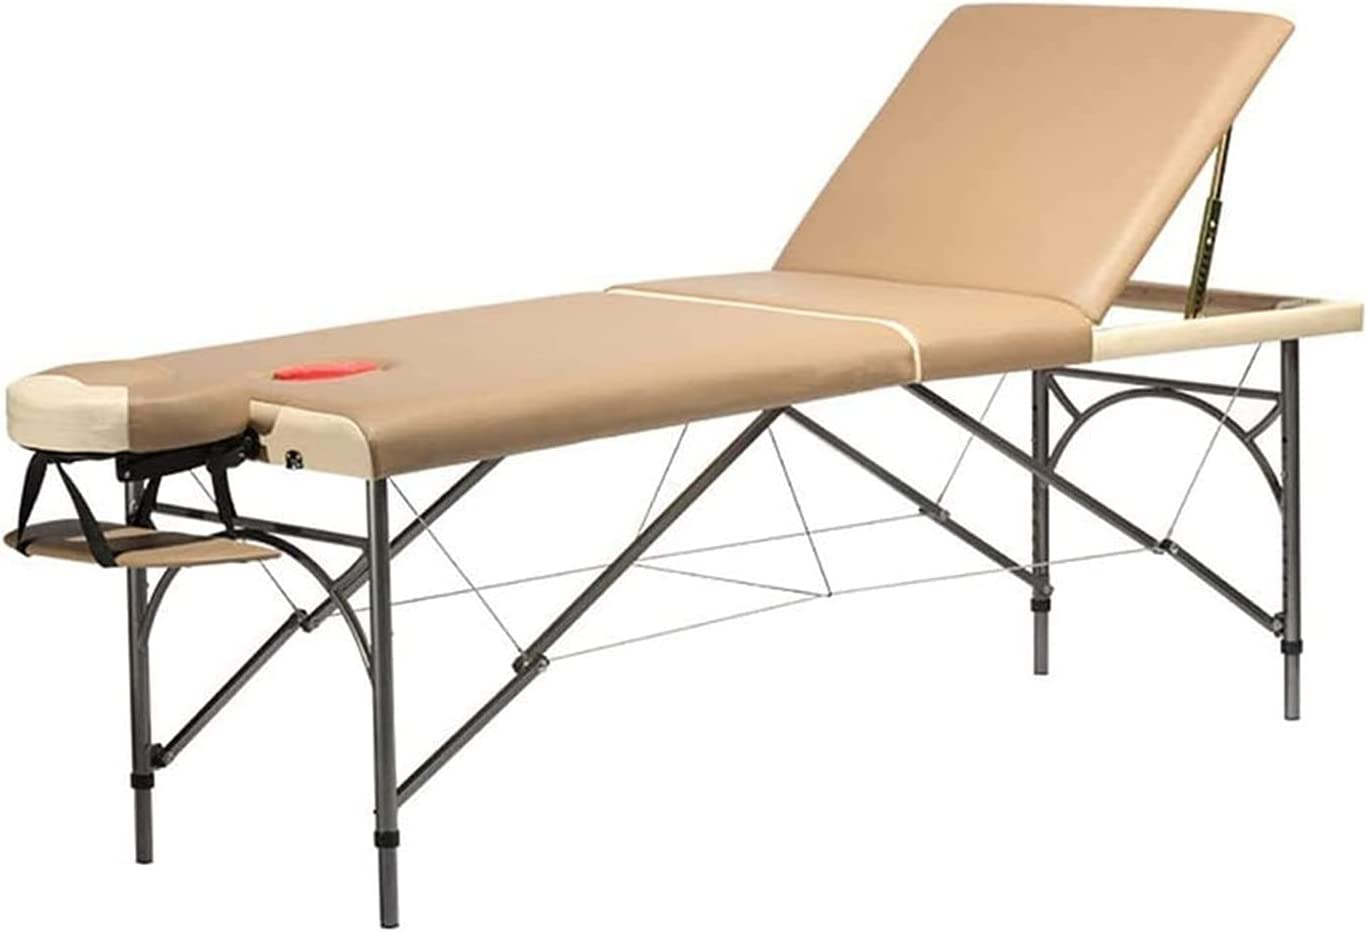 ELXSZJ XTZJ Massage Table All items in the store Spa Bed 3 Portable Leg Ranking TOP7 Sections Wooden